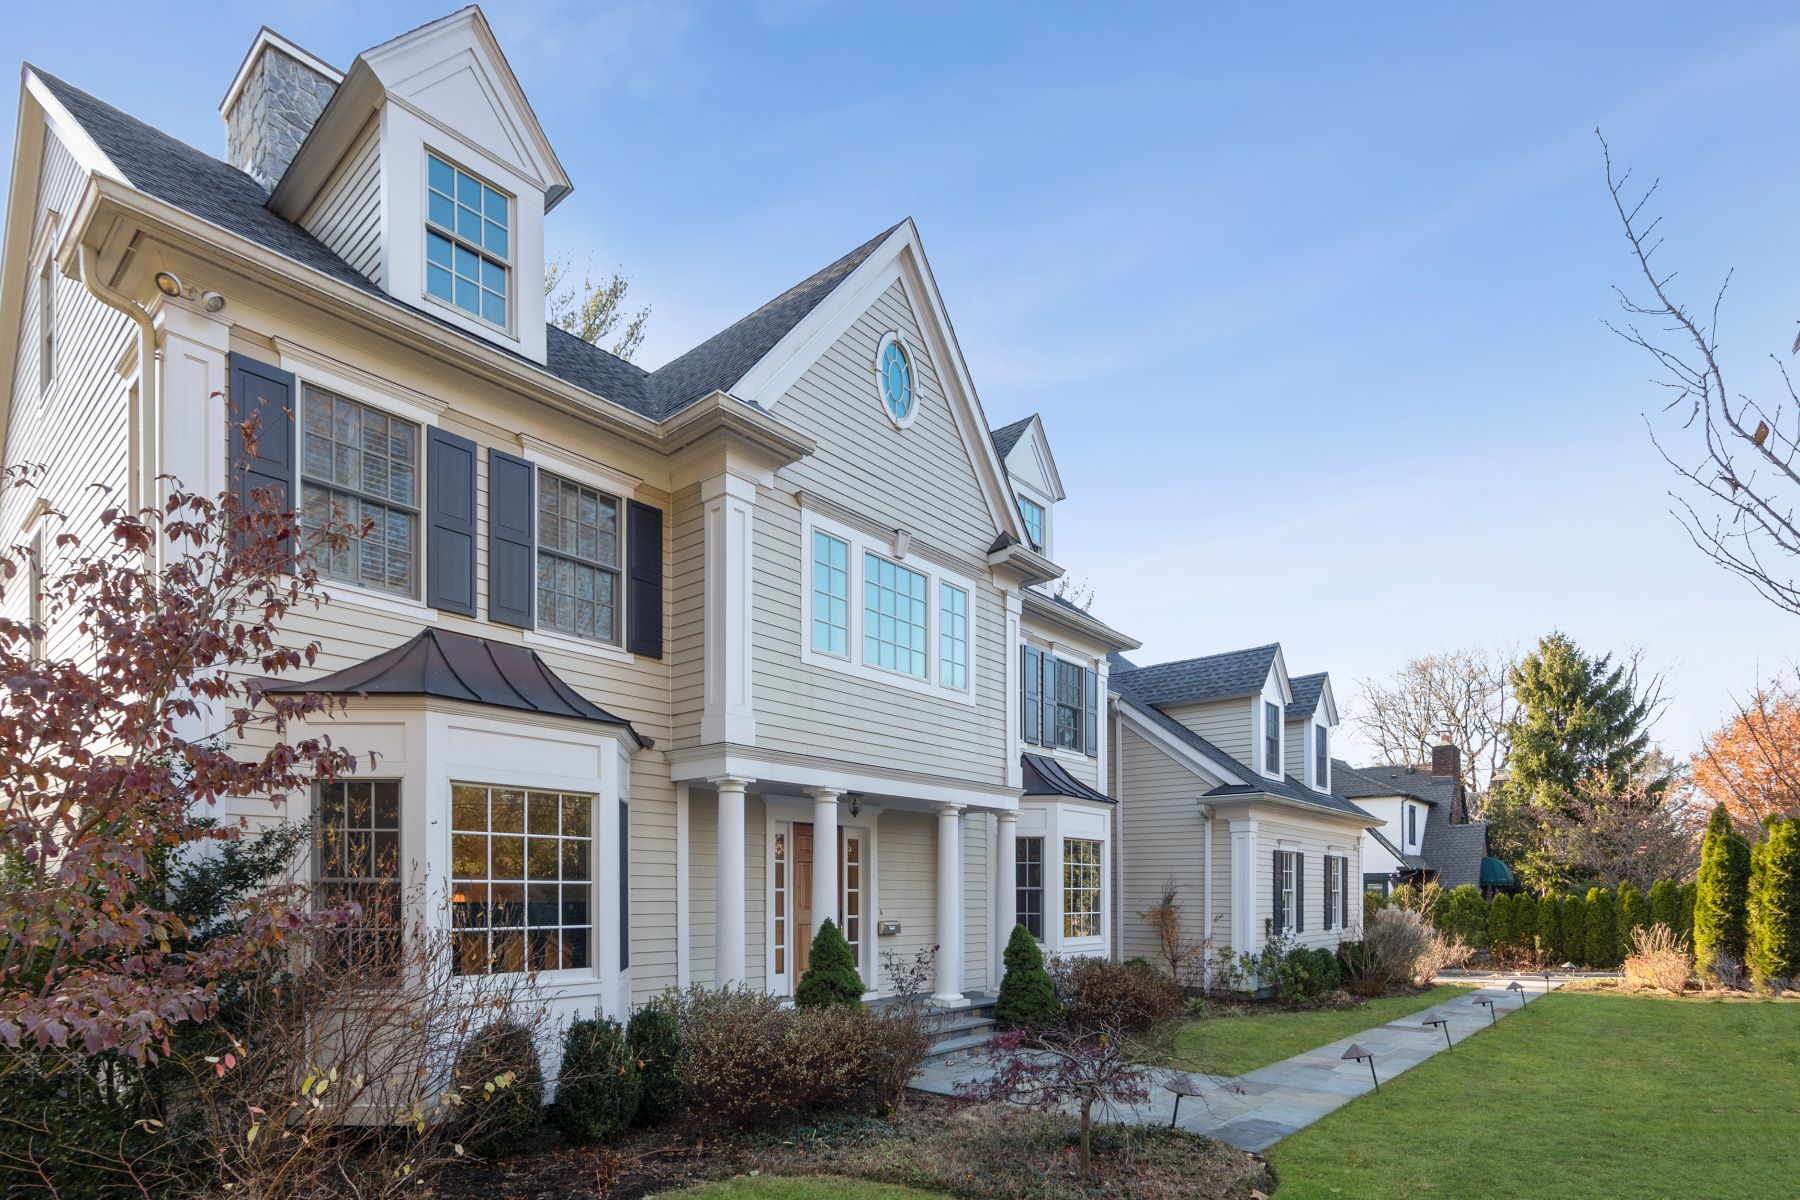 Single Family Homes for Active at Bright & Sunny Like-New Colonial 18 Drake Road Scarsdale, New York 10583 United States